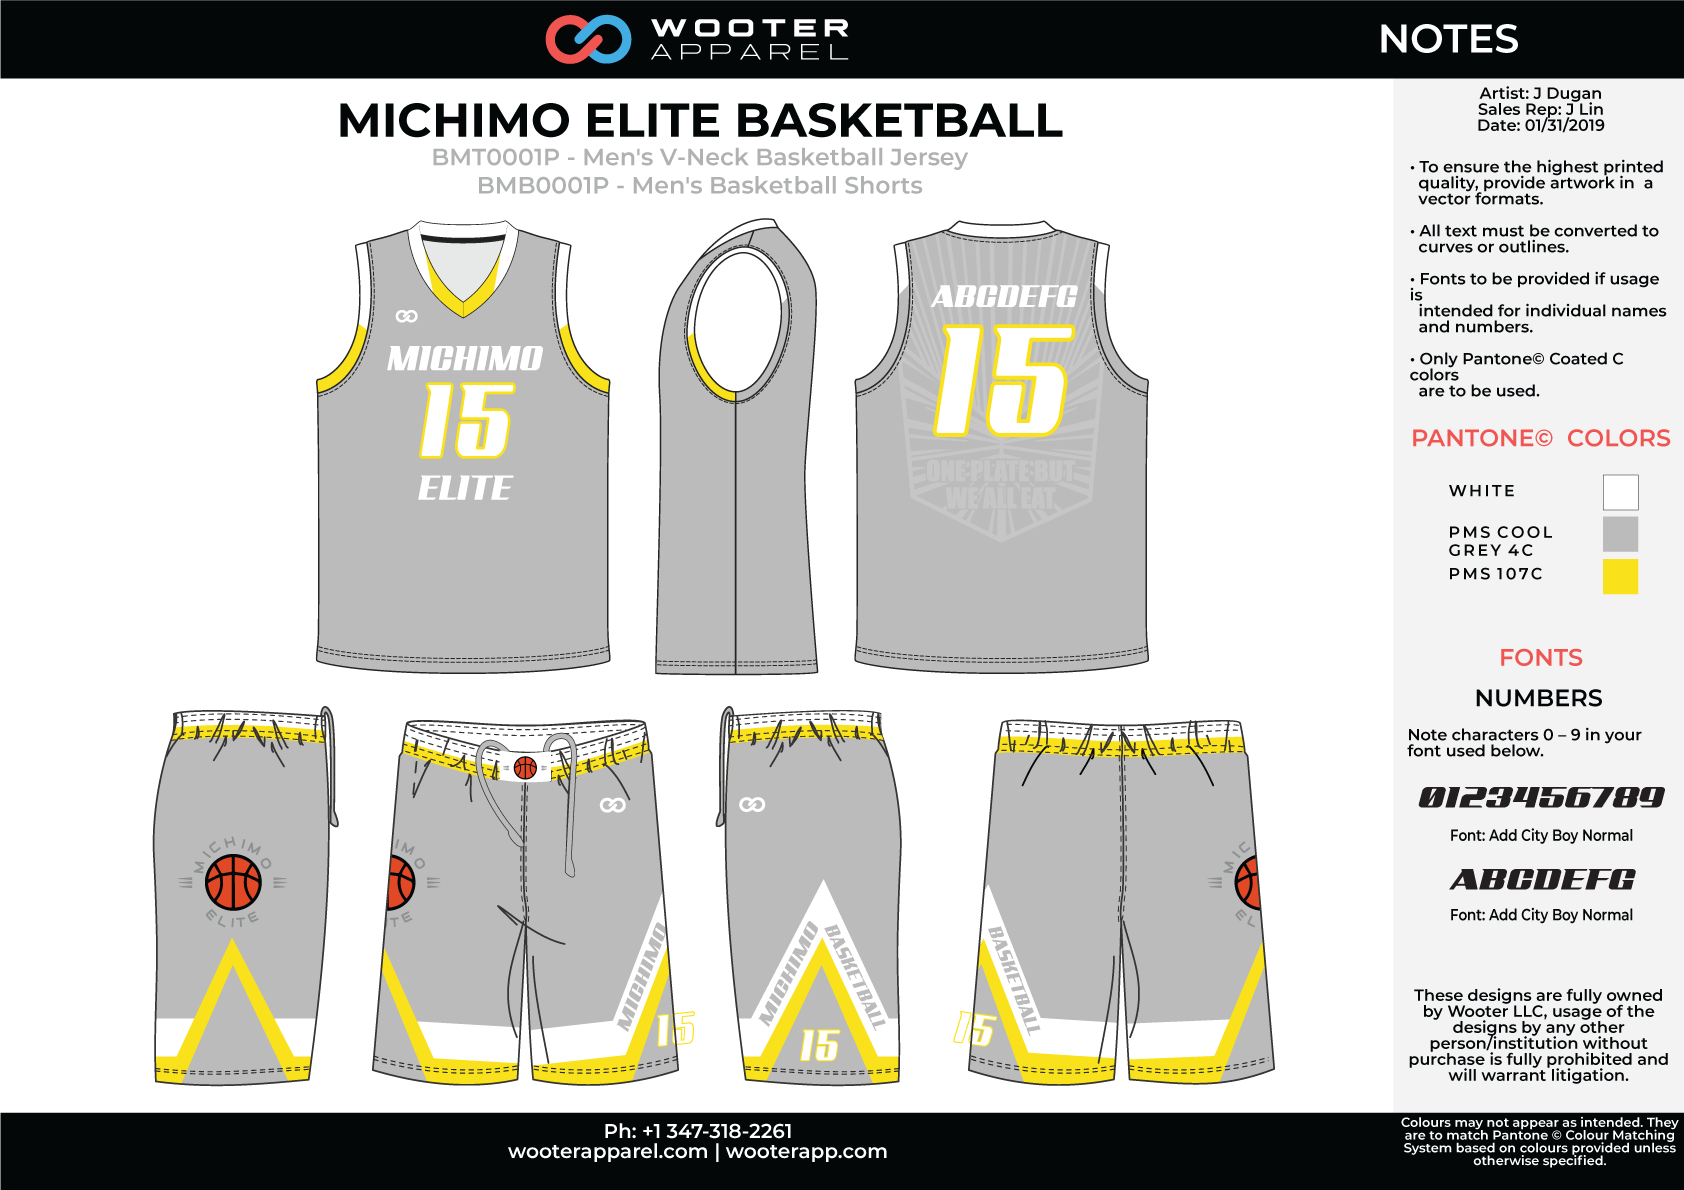 MICHIMO ELITE Grey Yellow White Men's V-Neck Basketball Uniform, Jersey and Shorts